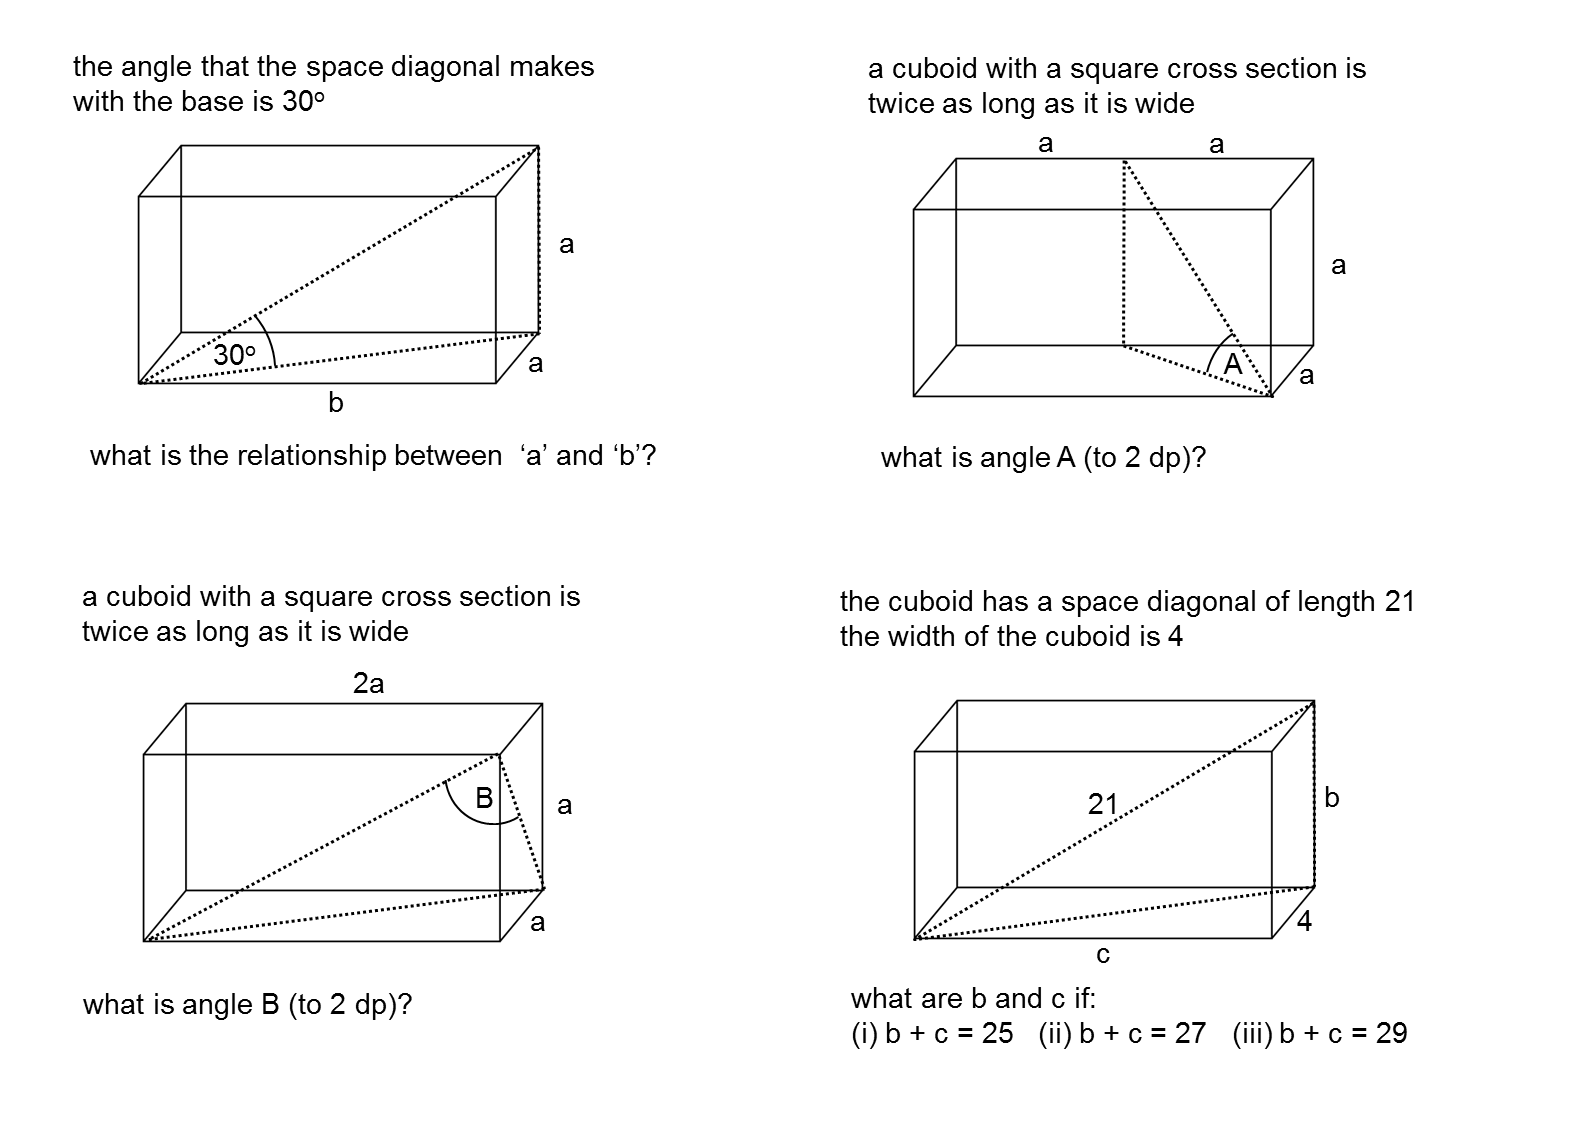 MEDIAN Don Steward mathematics teaching: 3D trigonometry